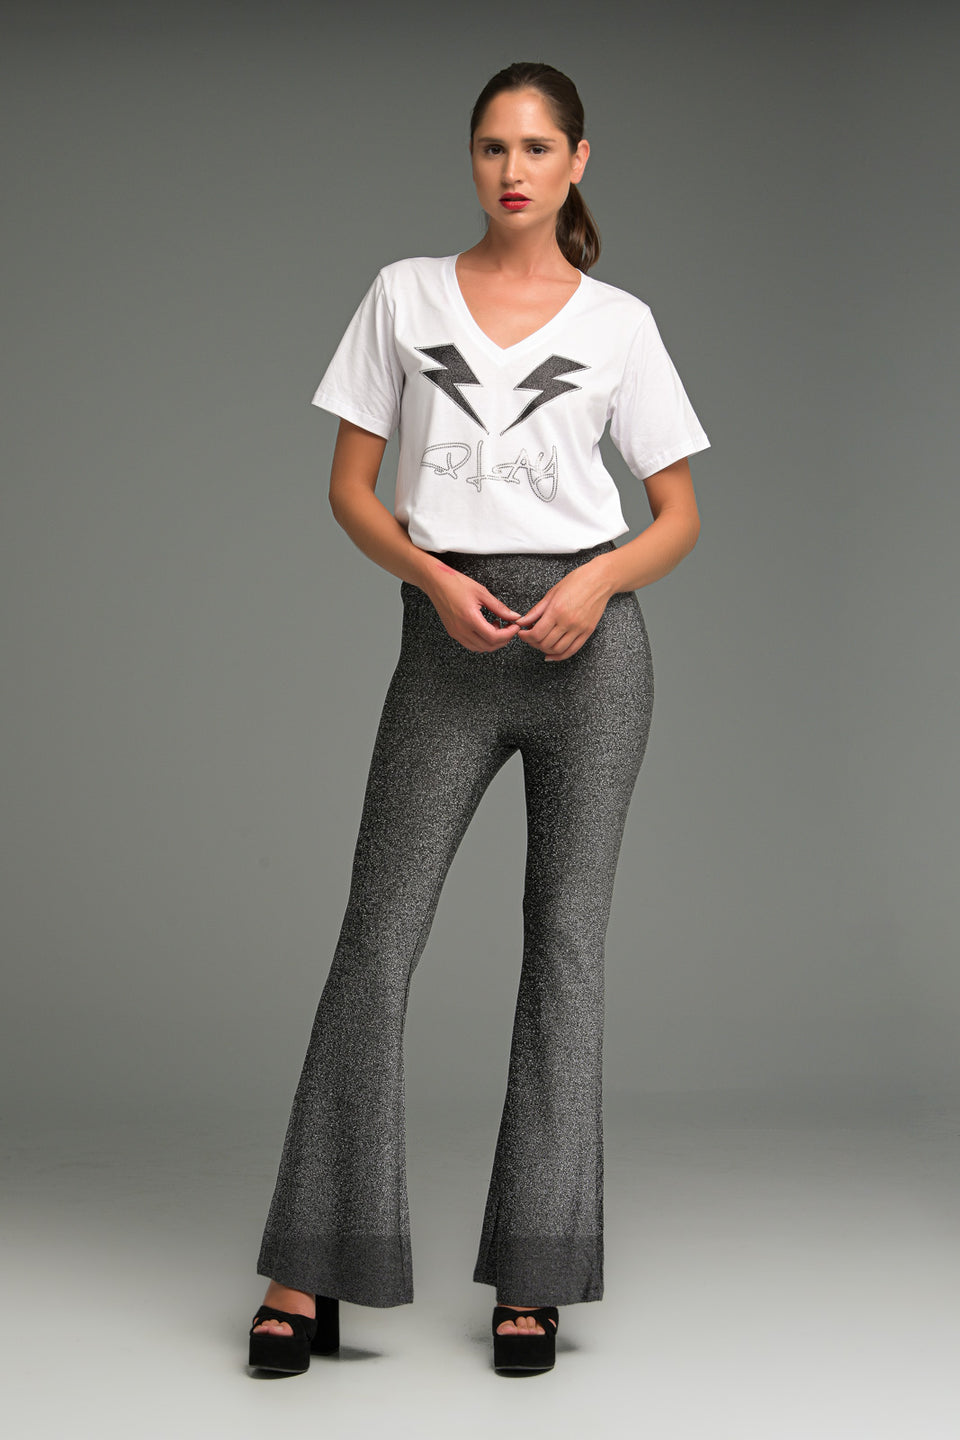 HIGHT WAIST STRETCHY BELL BOTTOM TROUSERS IN LUREX FABRIC SILVER